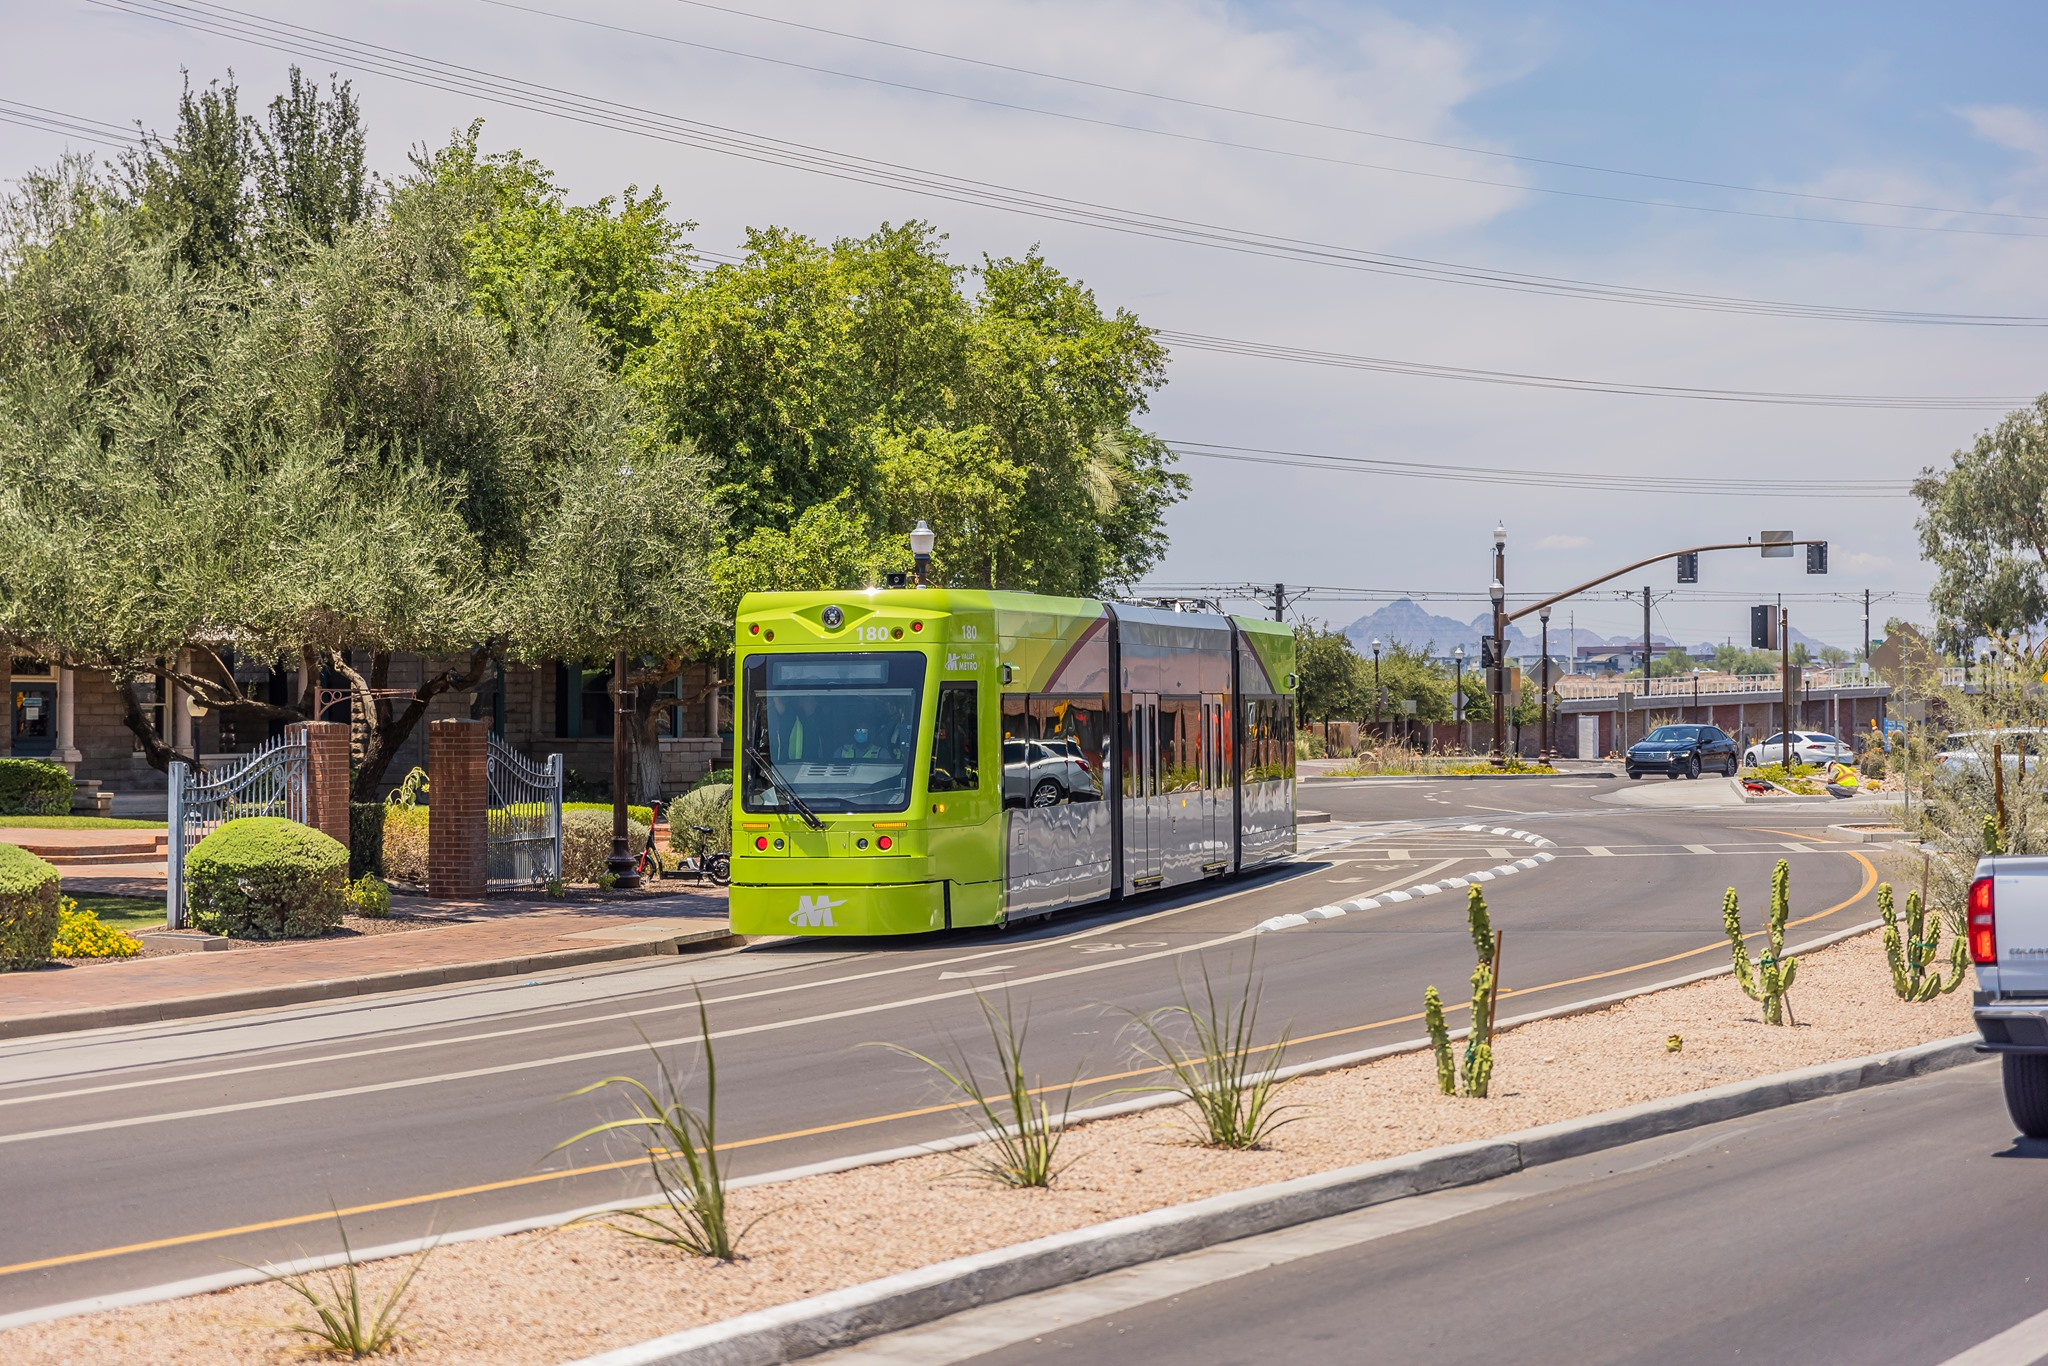 Streetcar conducting daylight testing on the Gammage Curve in Tempe.